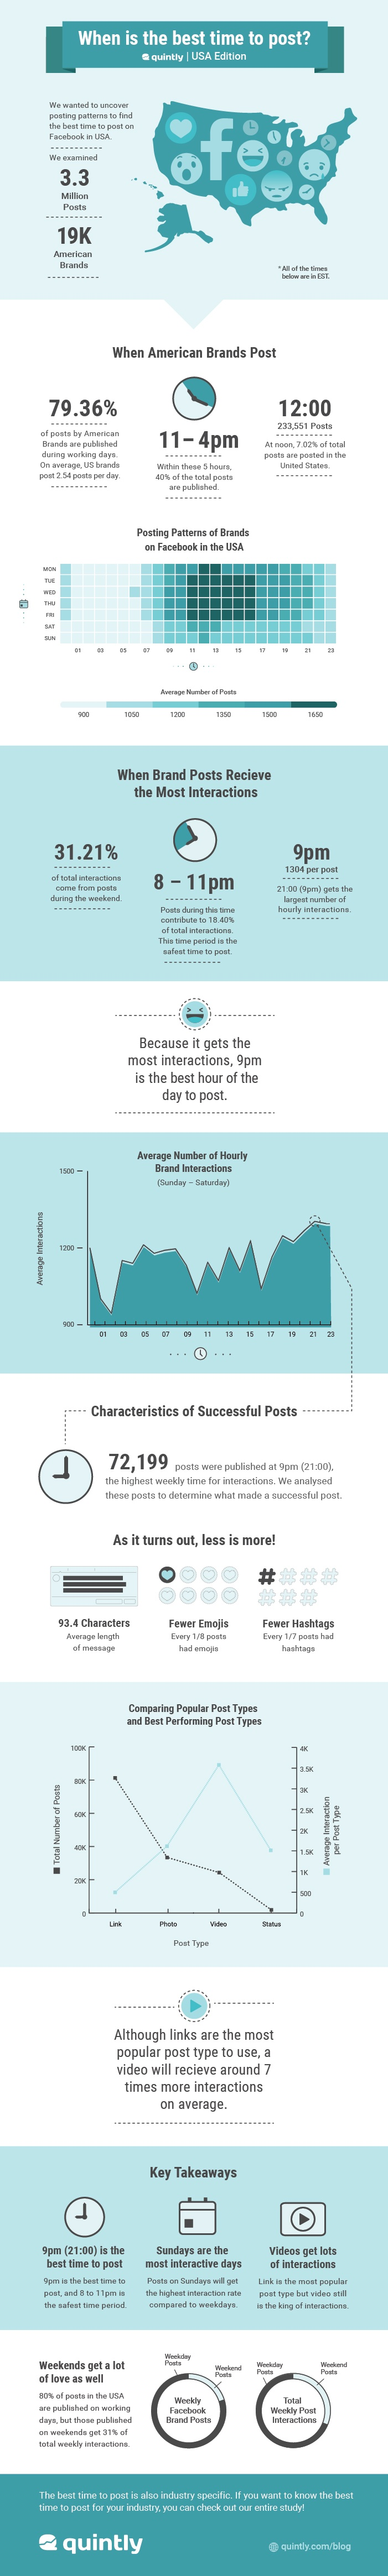 Best time to post Infographic final